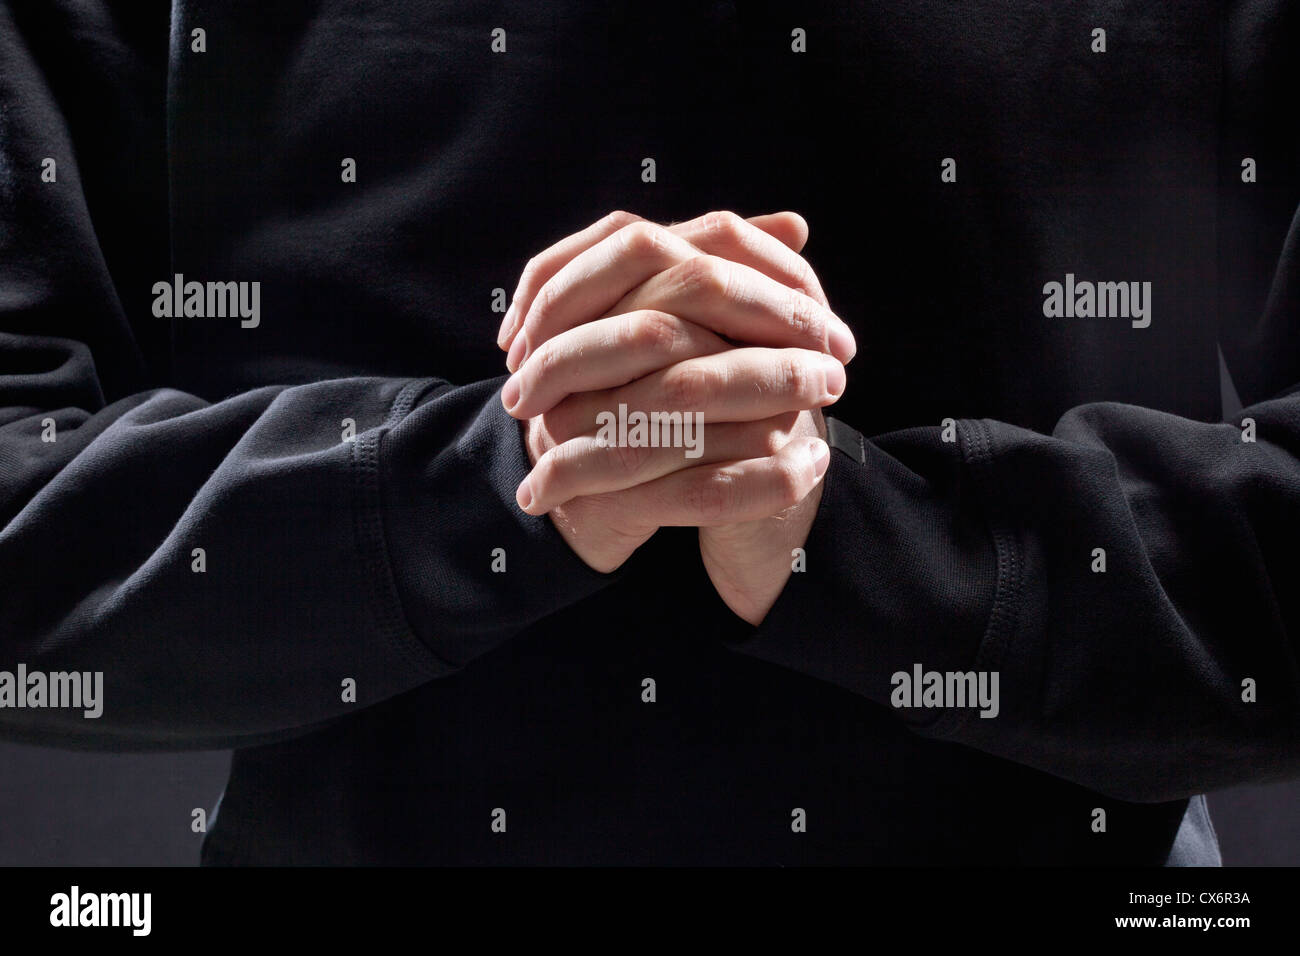 Man with clasped hands - Stock Image